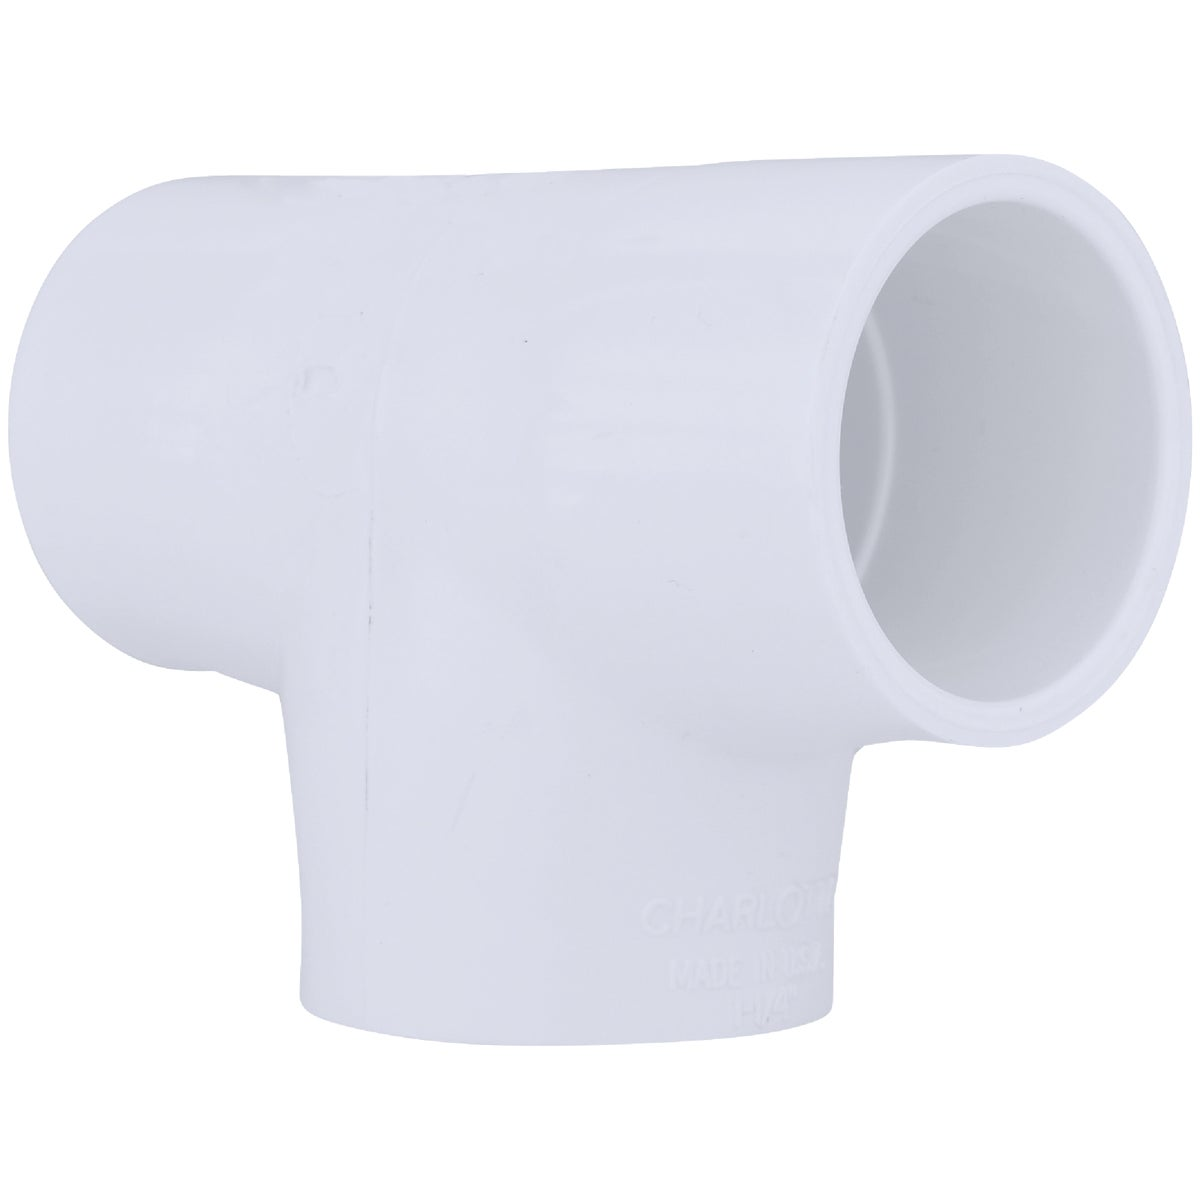 "1-1/4"" PVC SLIP TEE - 31414 by Genova Inc"